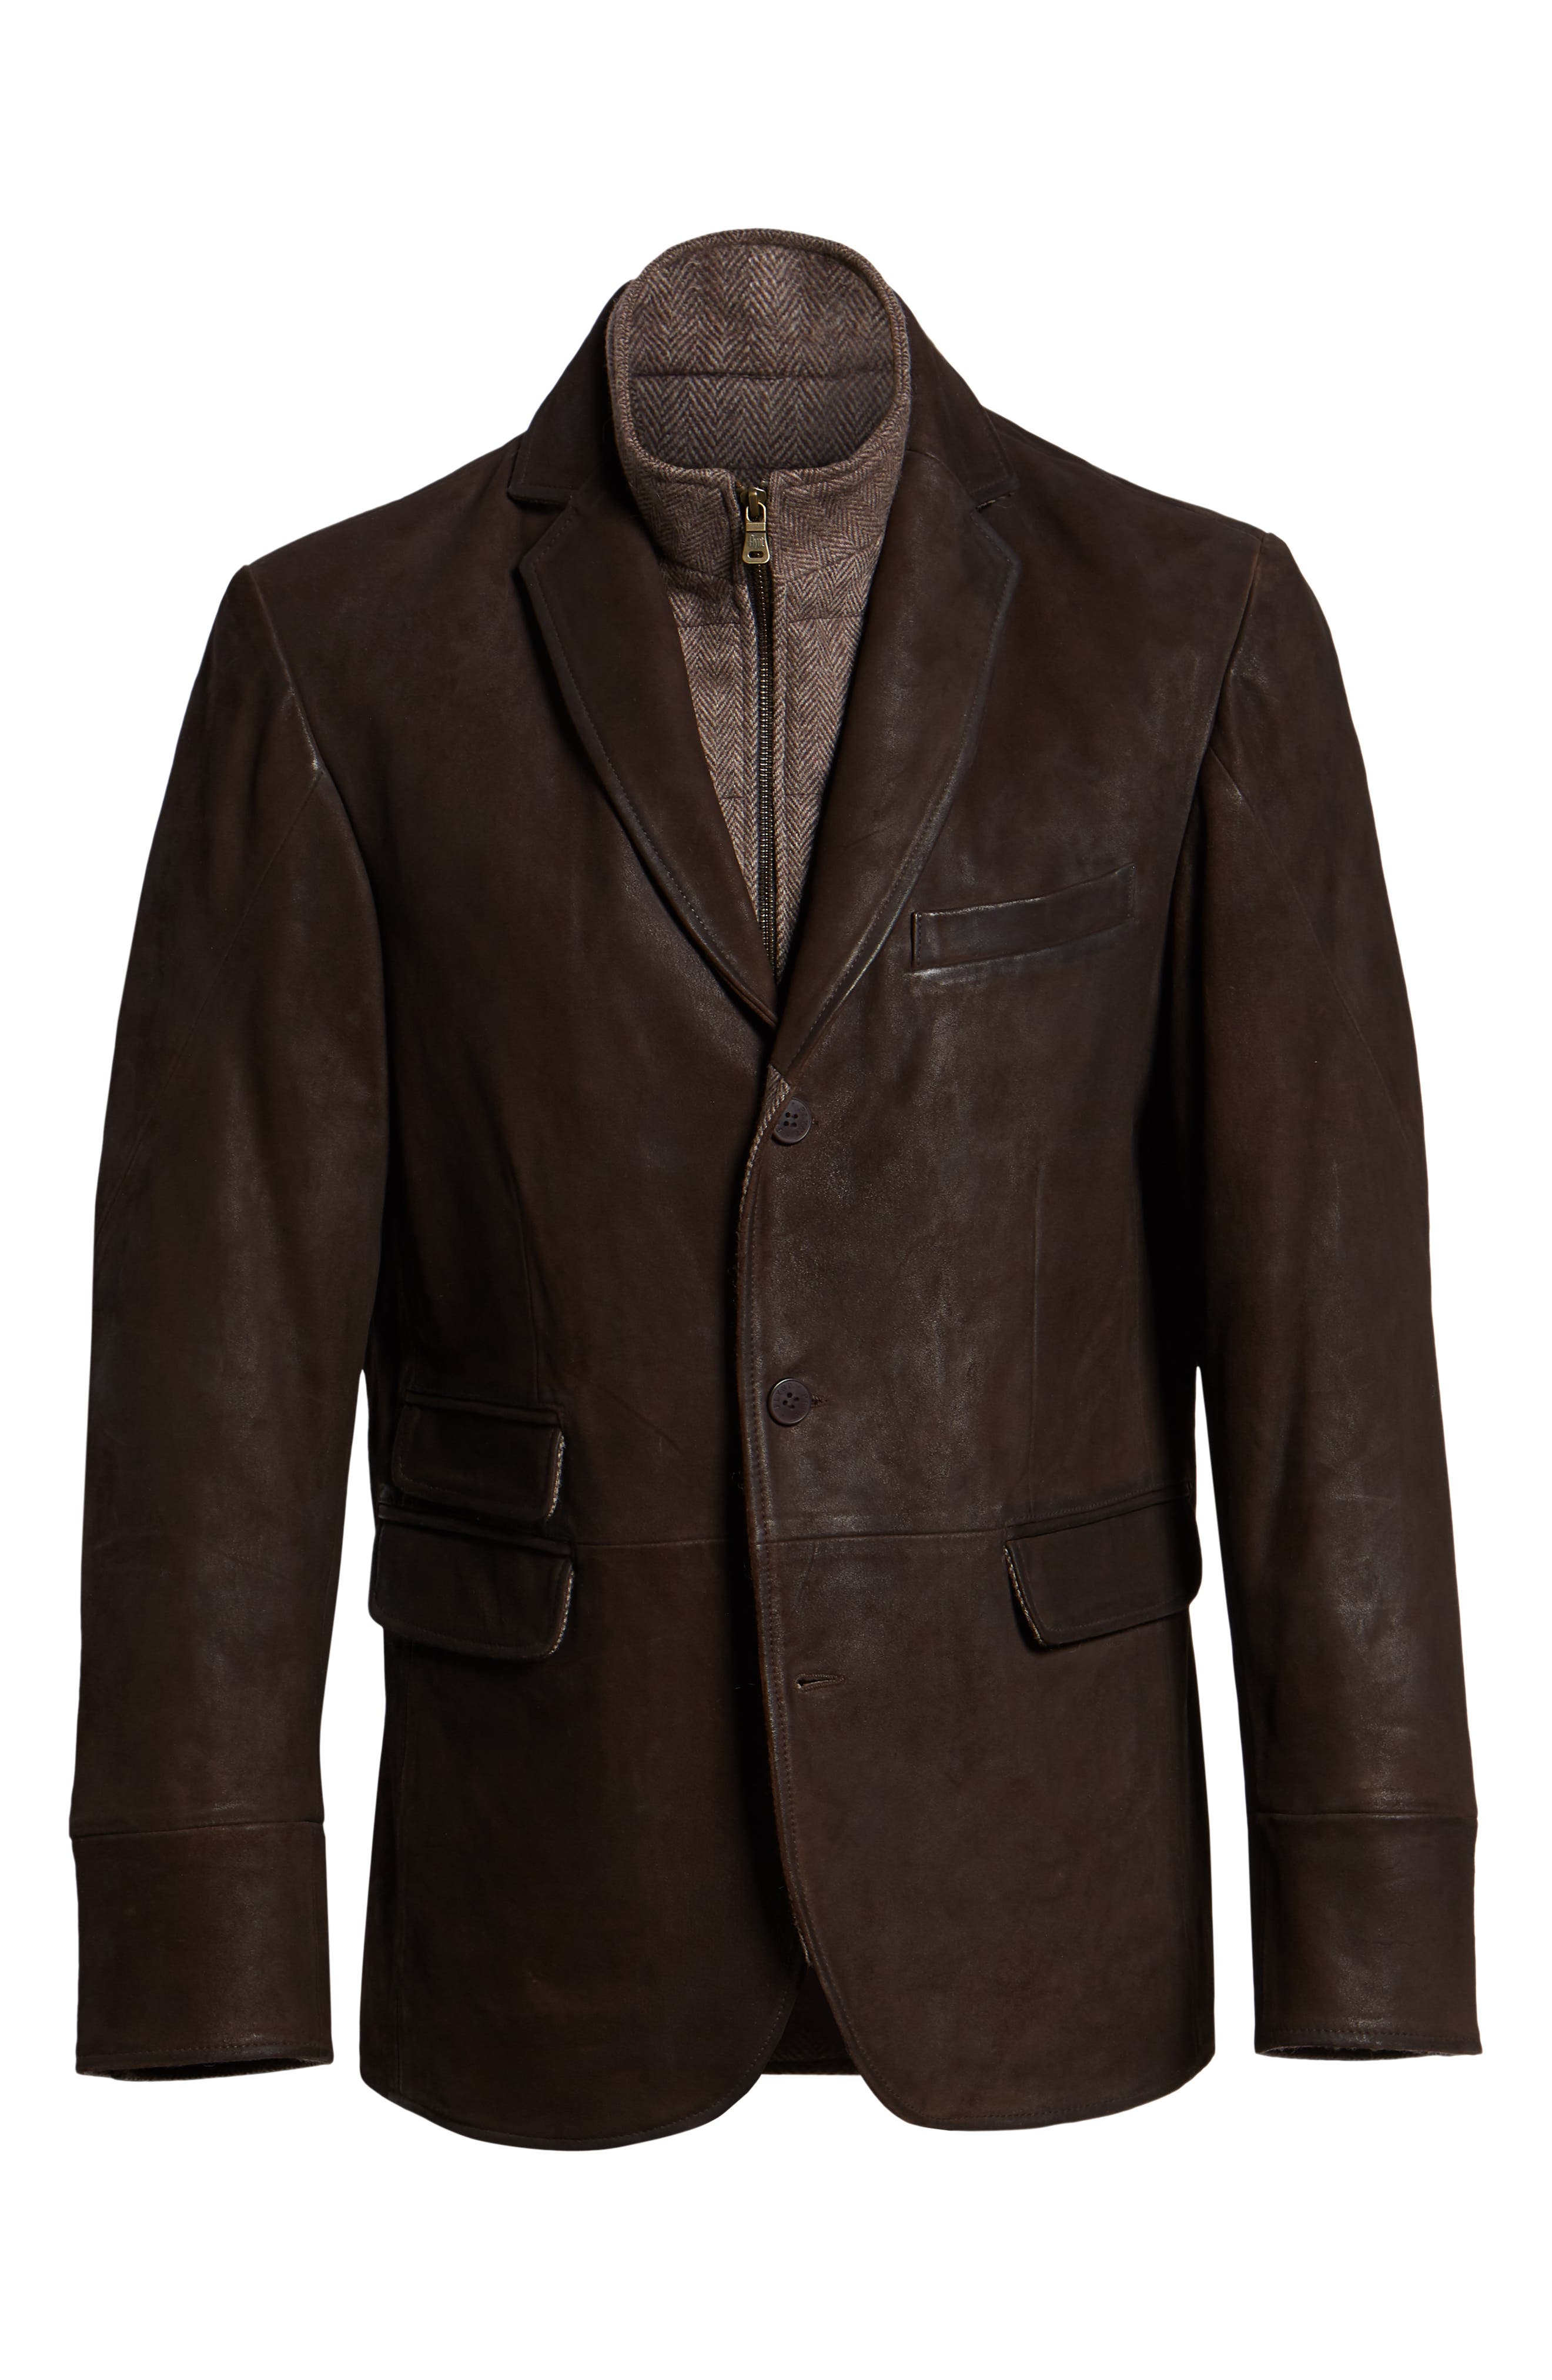 Distressed Leather Hybrid Coat,                             Alternate thumbnail 6, color,                             CHOCOLATE BROWN